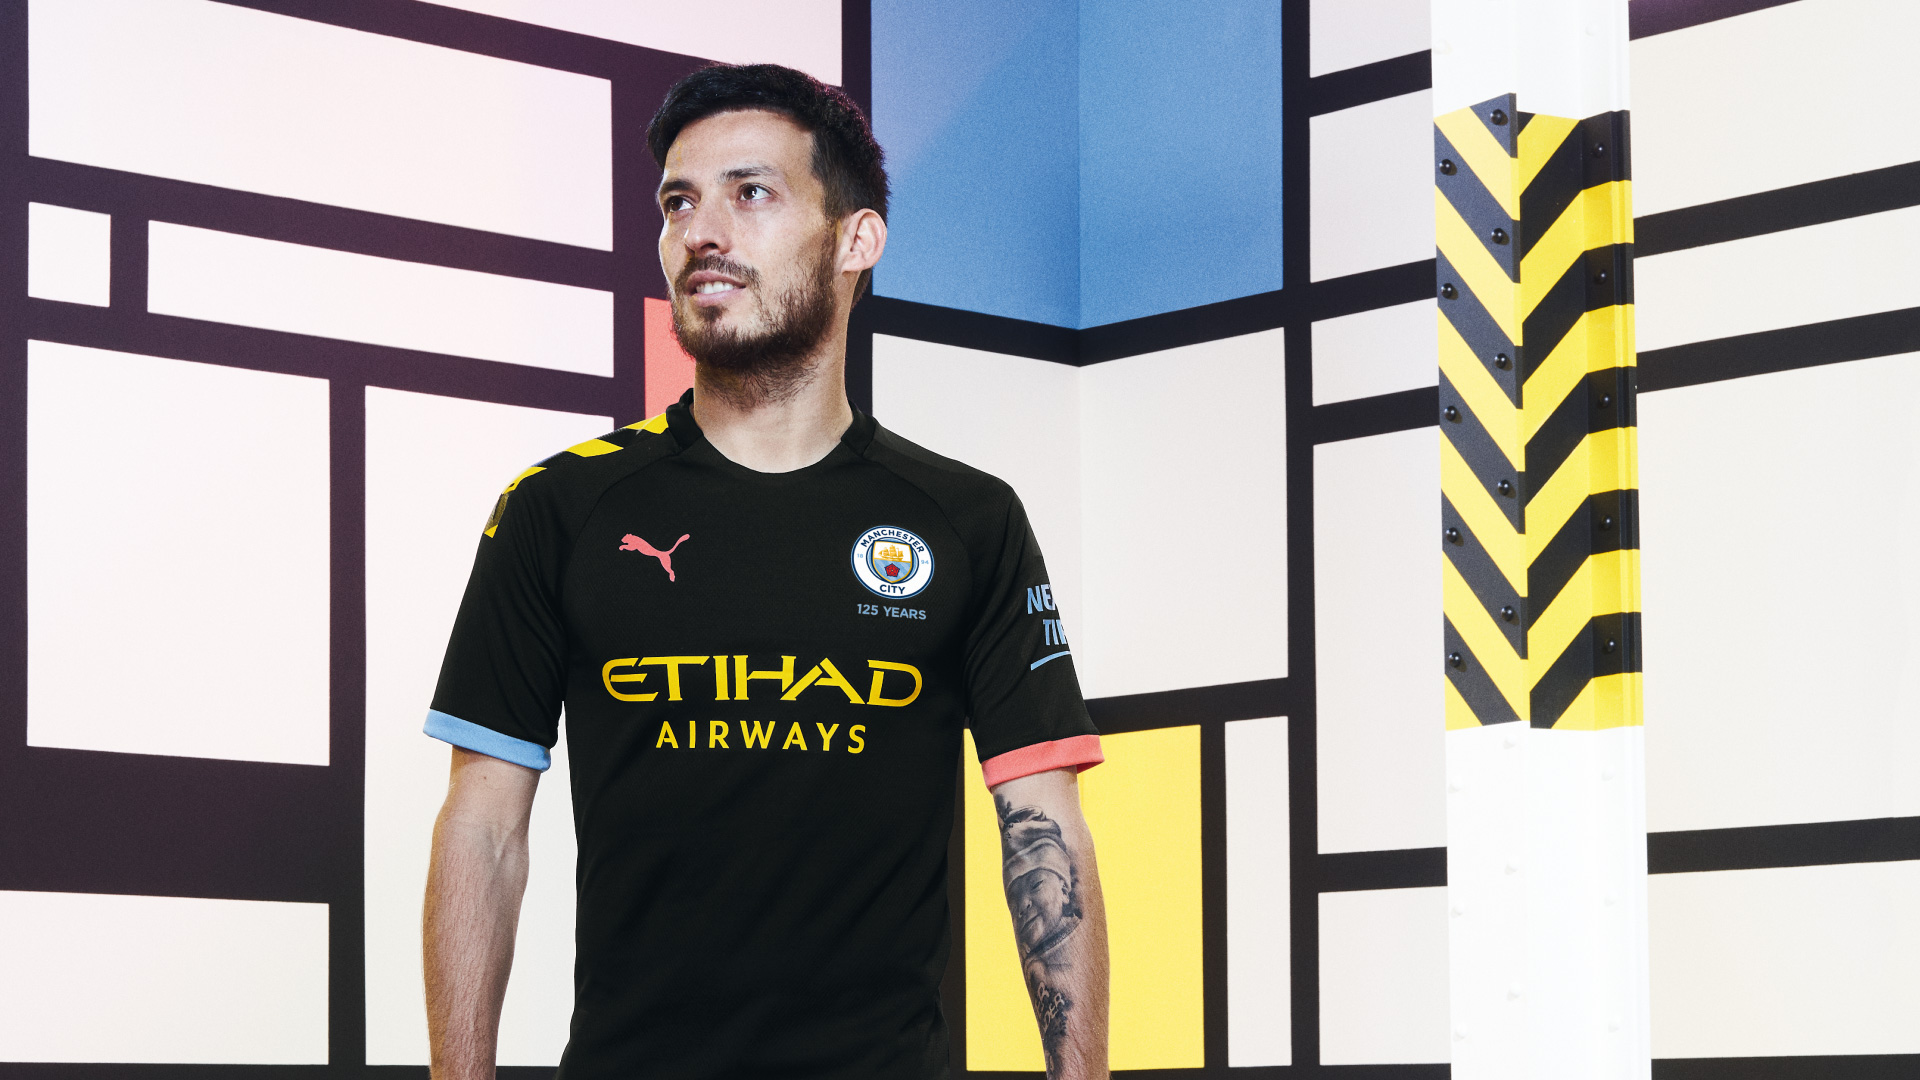 19AW_Social_TS_Football_Manchester-City_Away_1920x1080px_Portrait_Silva_06004.jpg